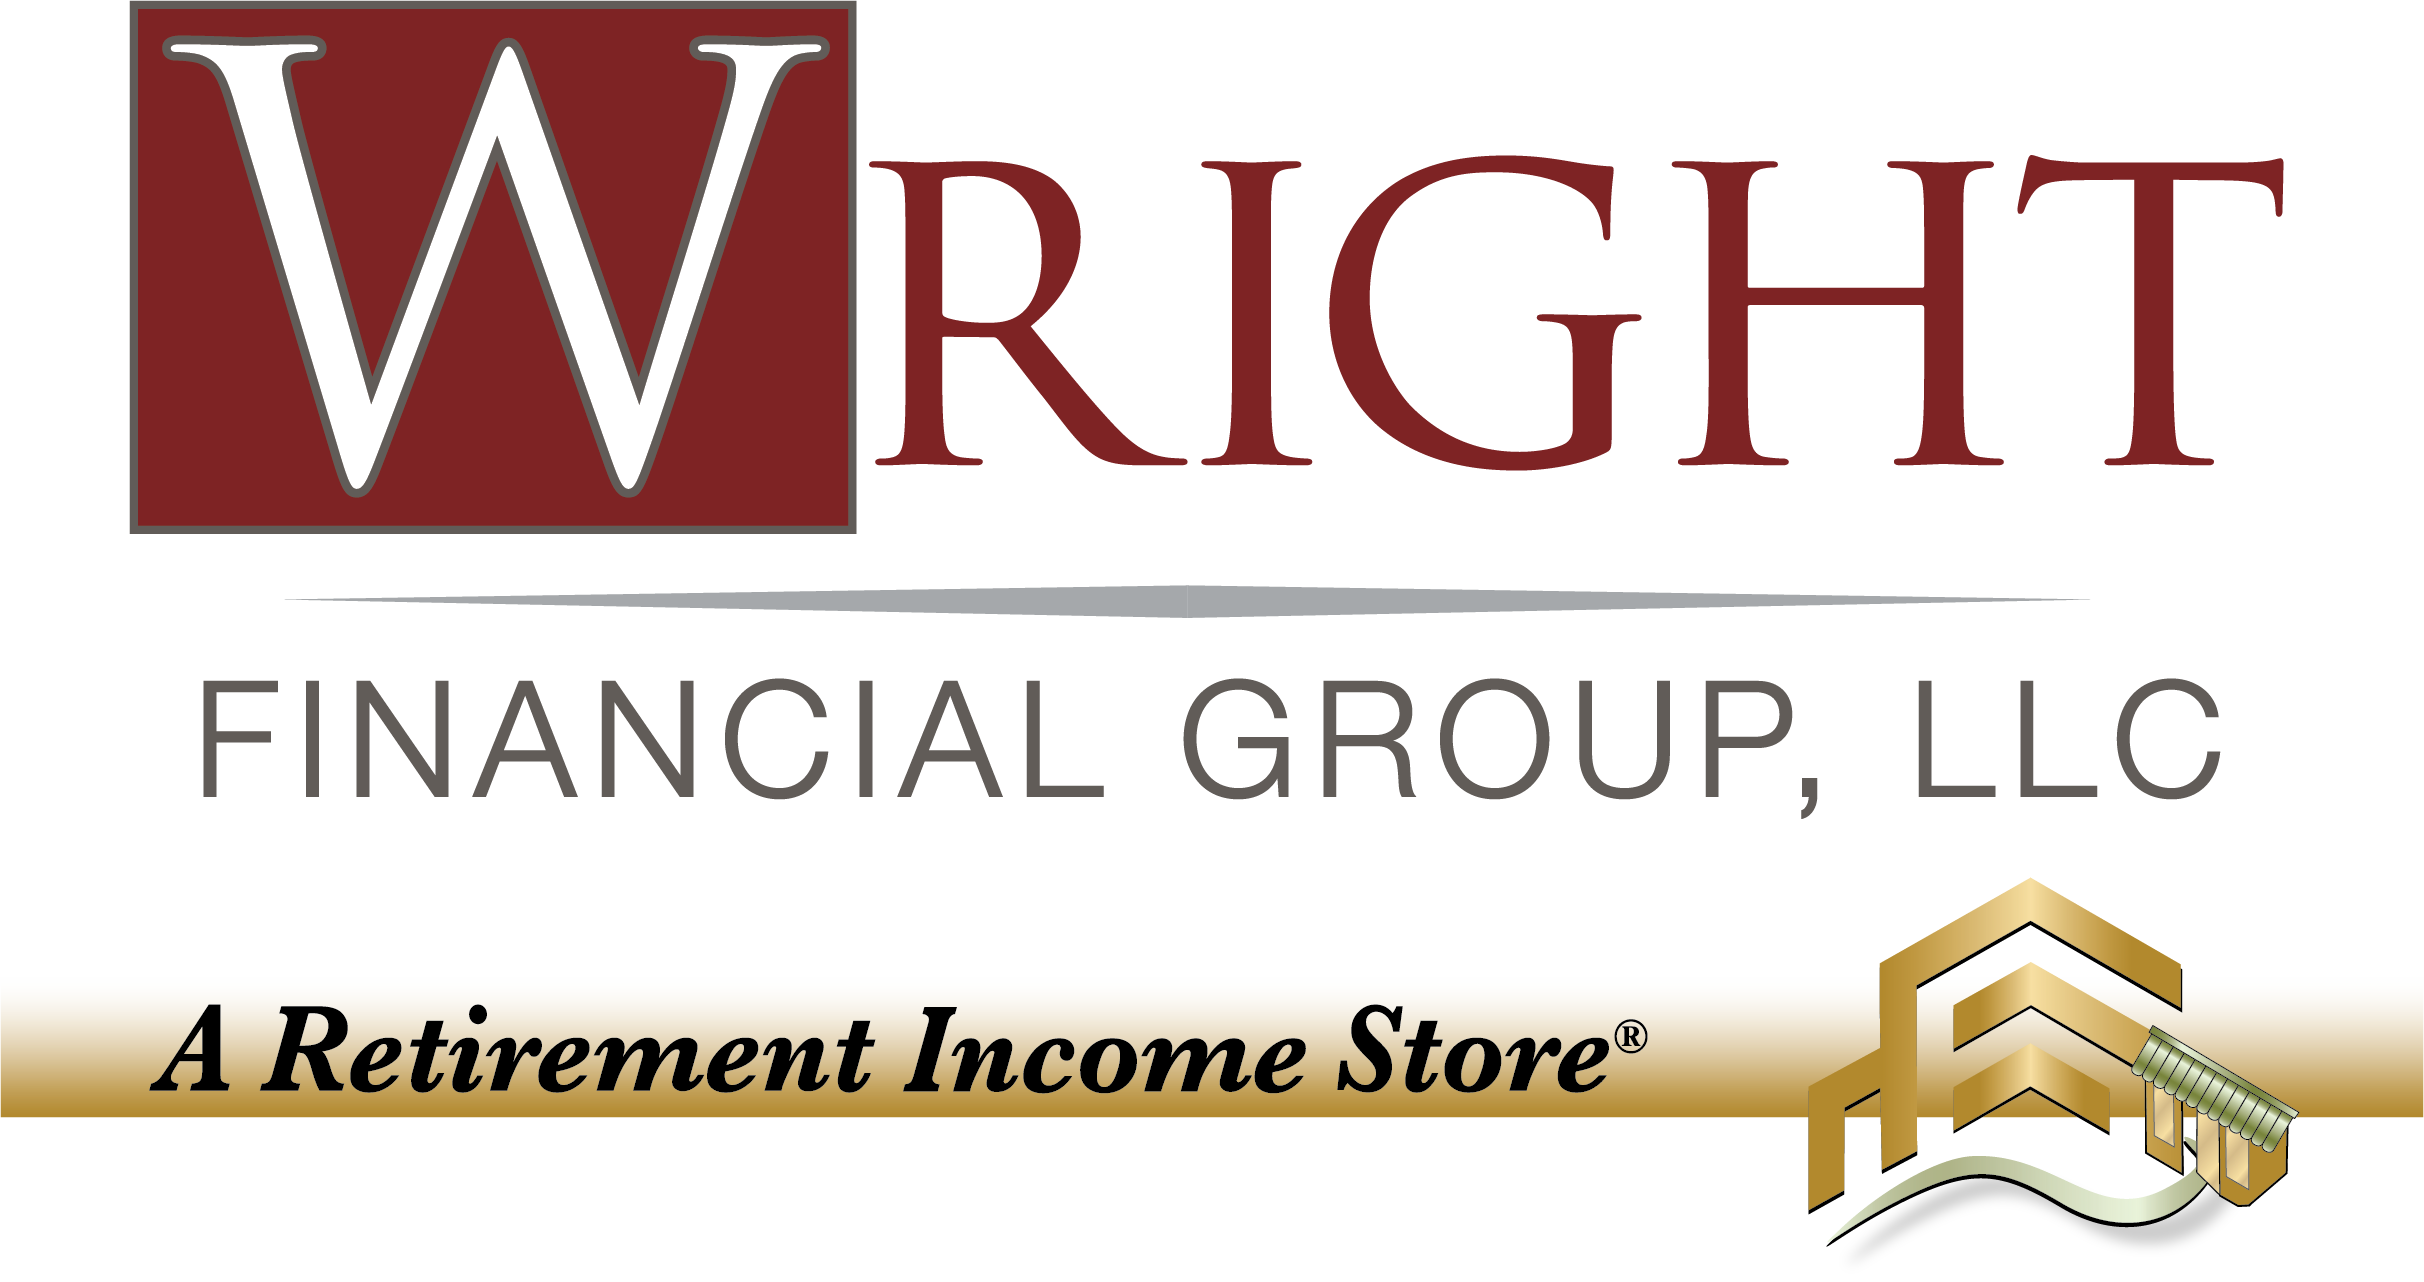 Wright Financial Group